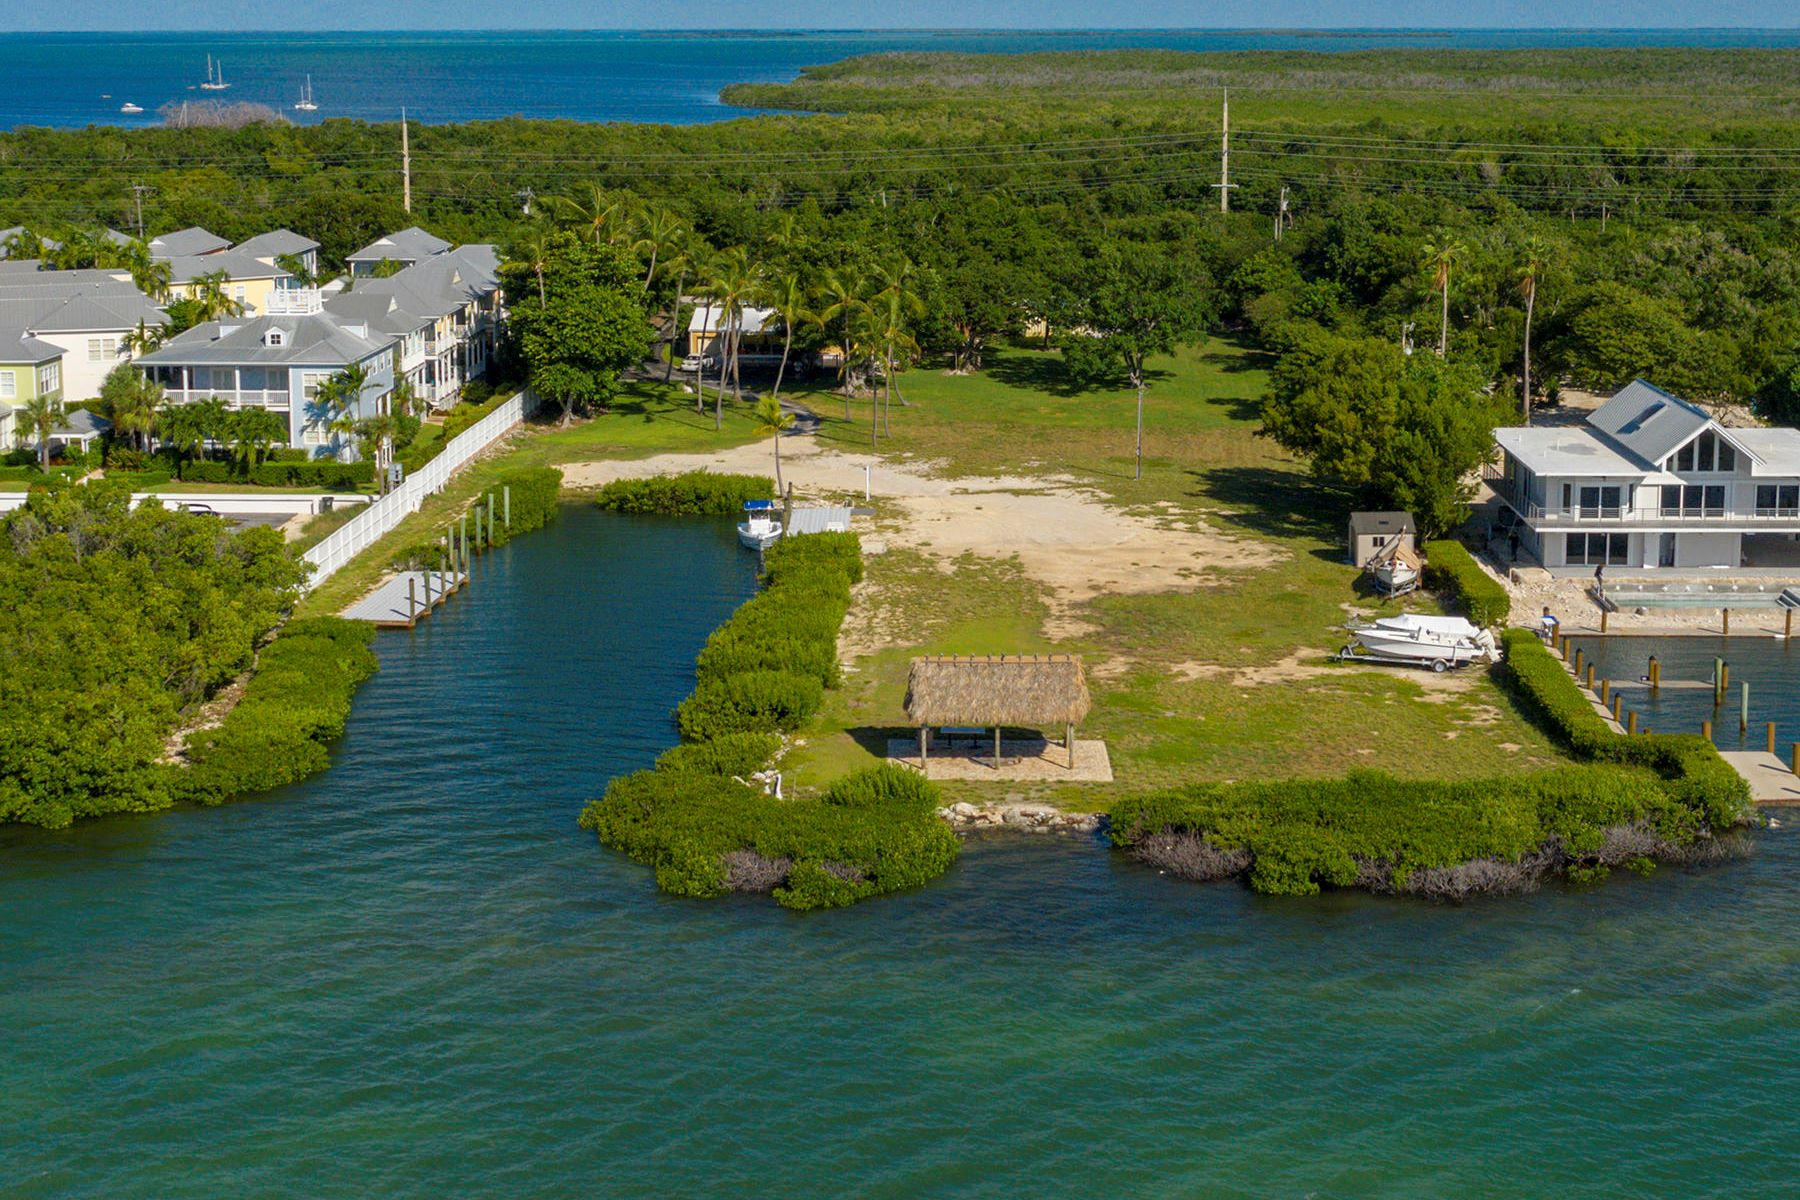 Single Family Homes for Sale at 85261 Old Highway, Islamorada, FL 85261 Old Highway Islamorada, Florida 33036 United States